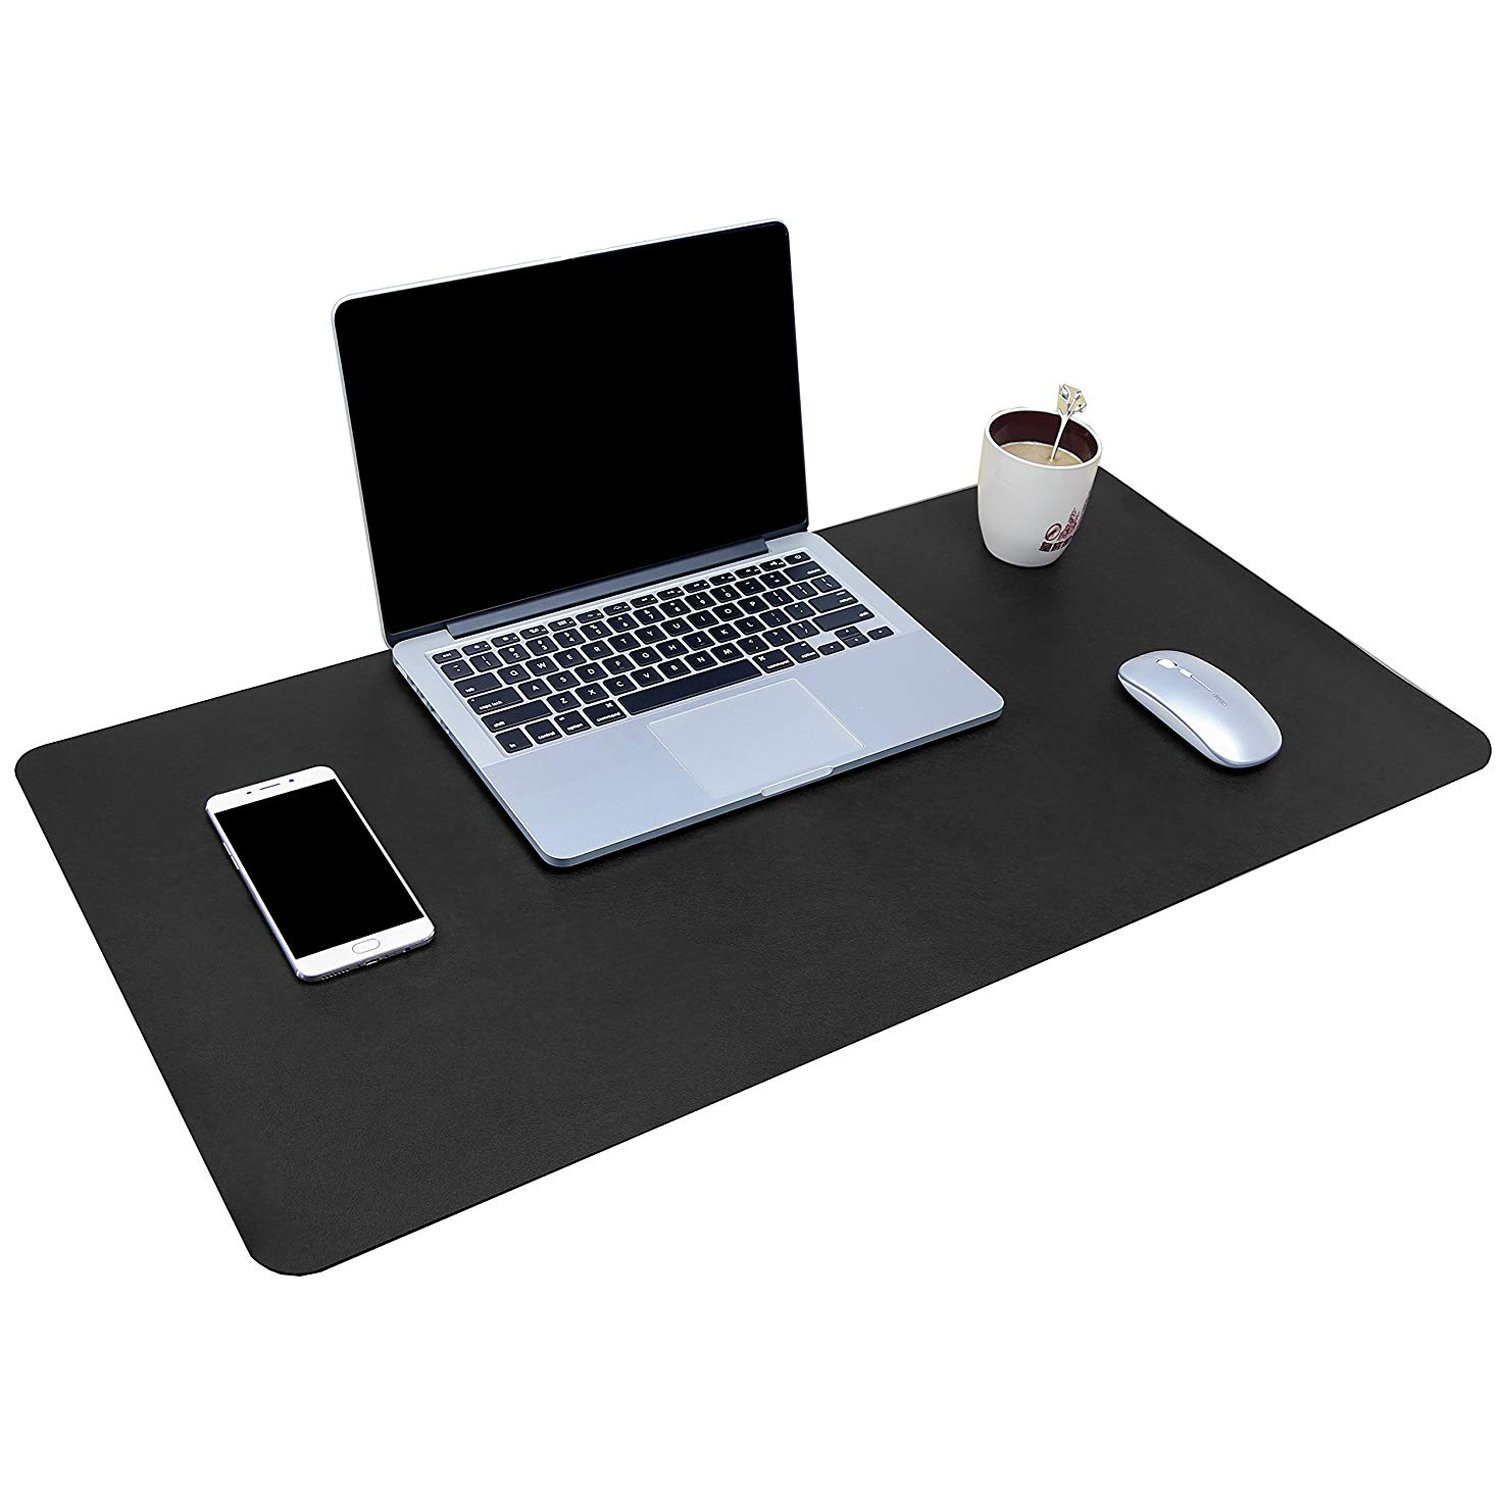 RRAASSEN Tappetini per il Mouse Gaming Mouse Pad 800mm x 400mm x 2mm